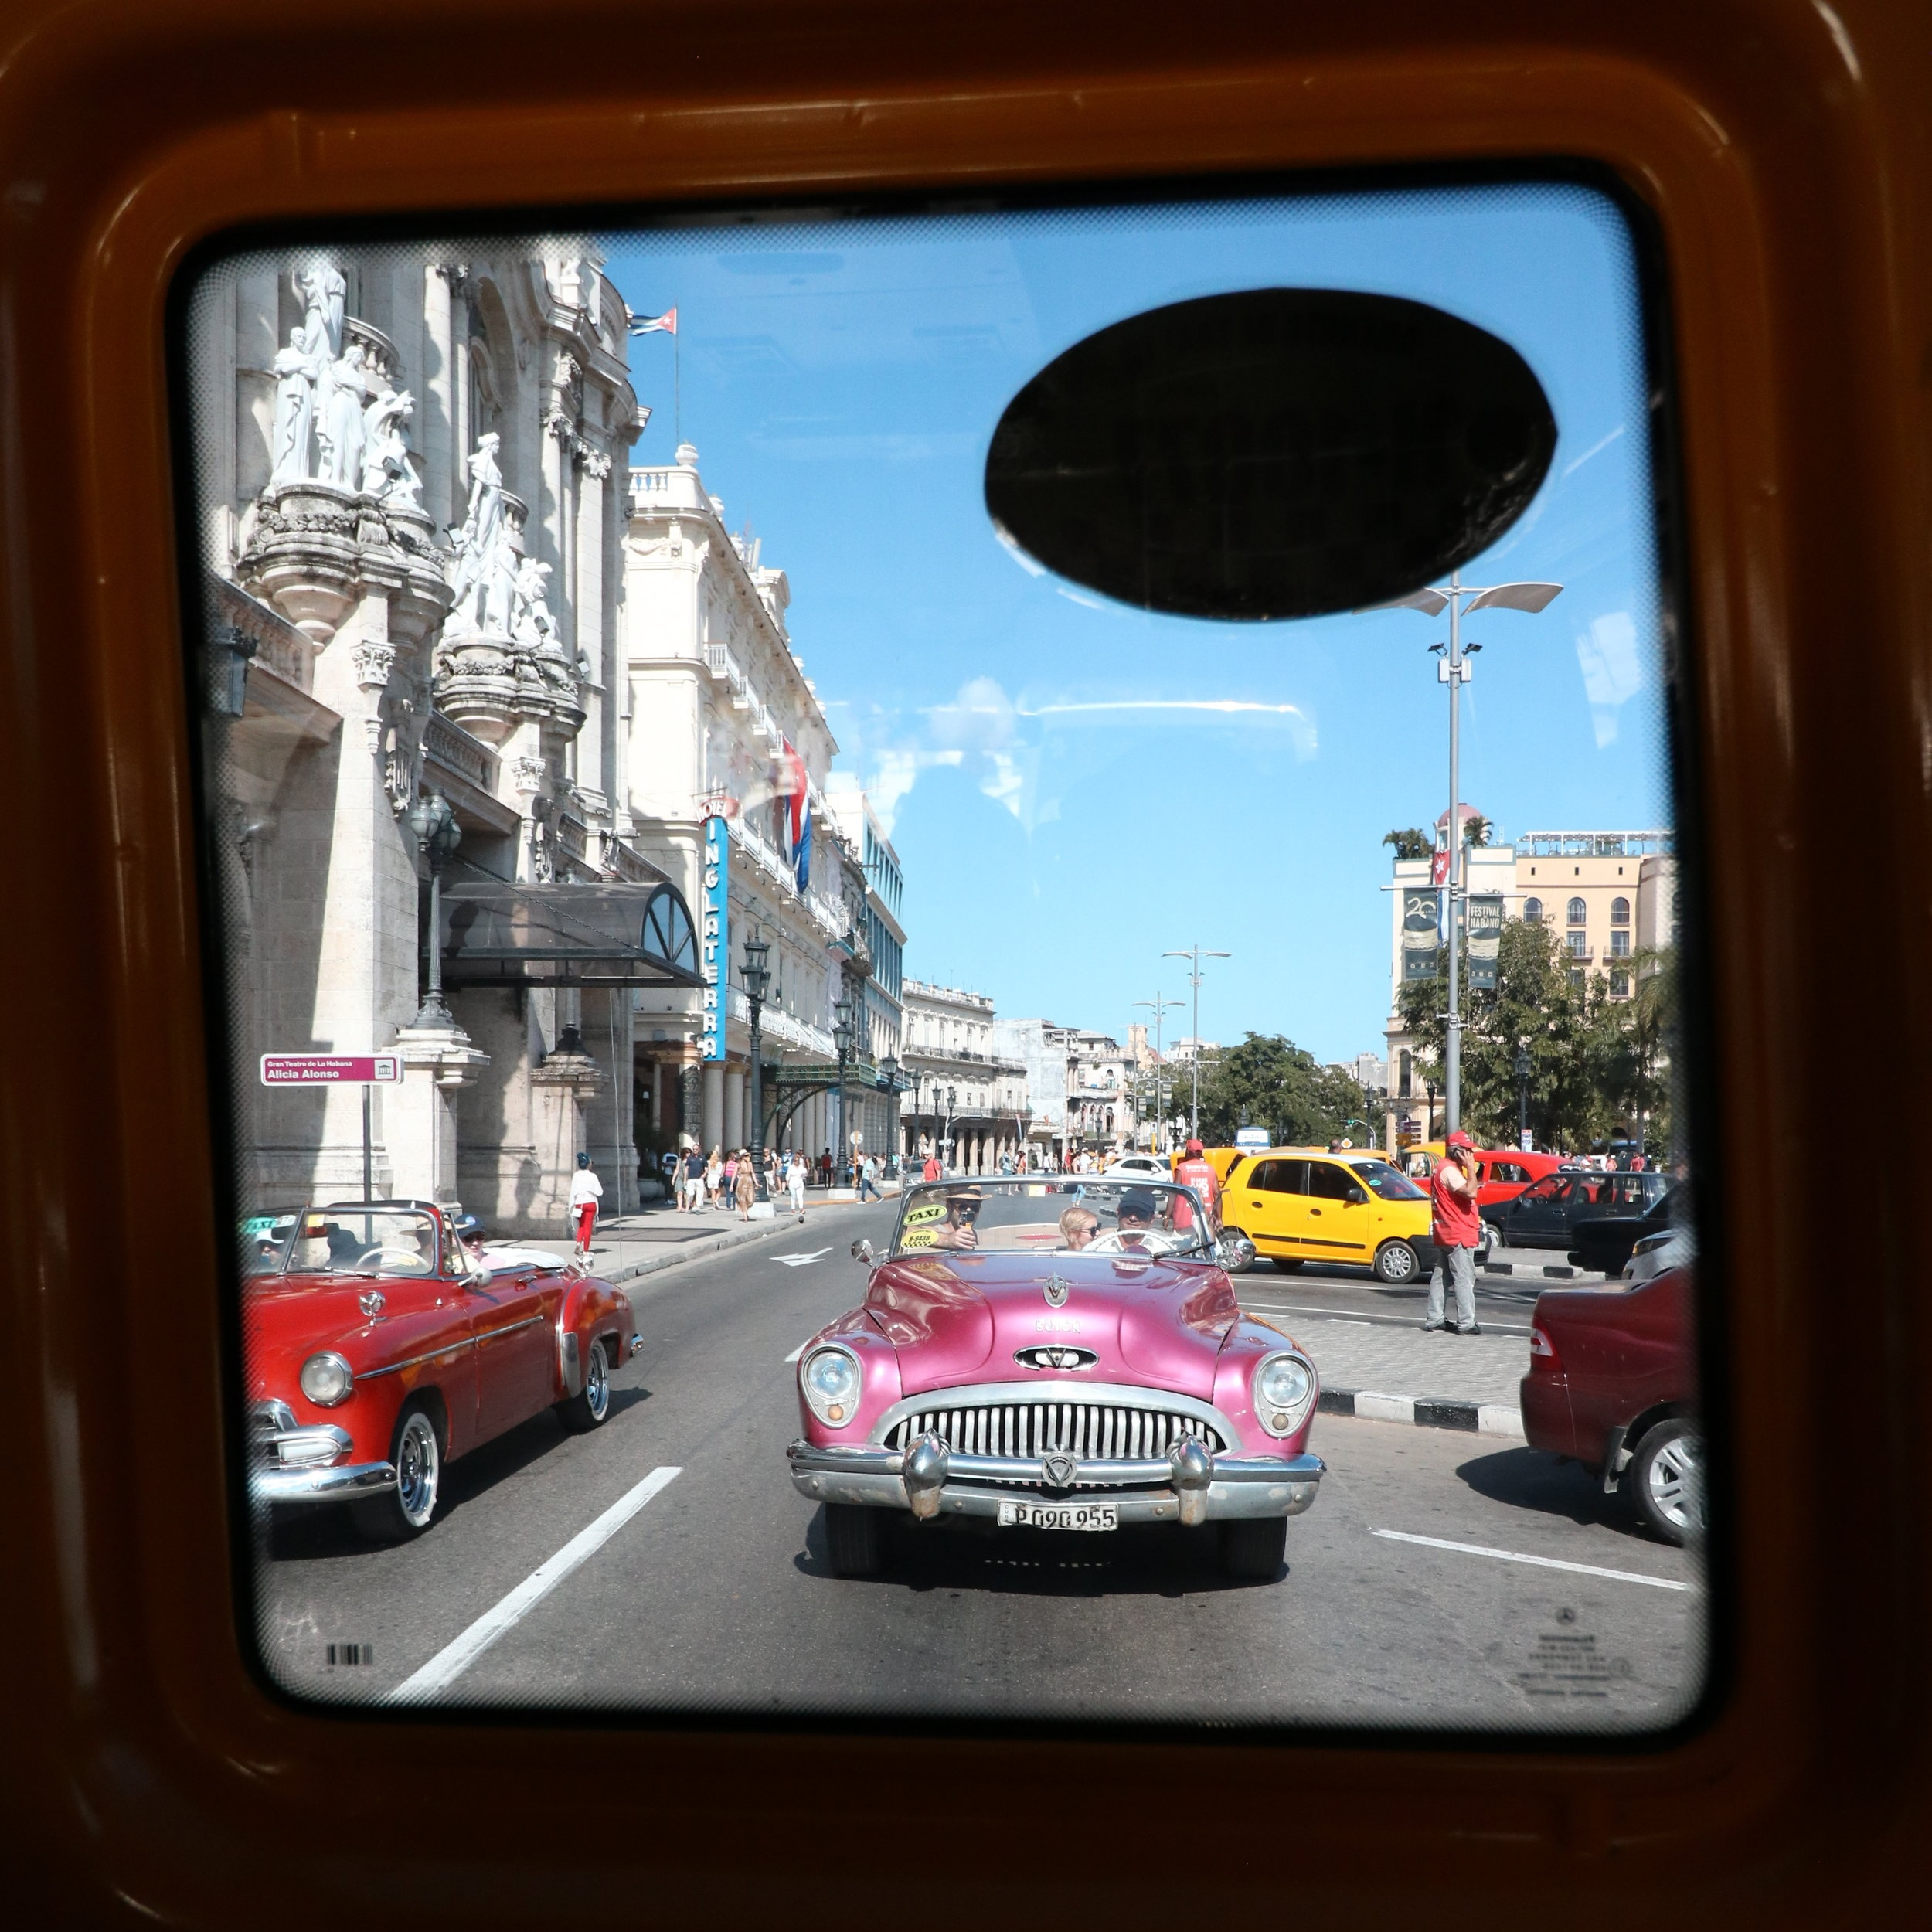 A classic American car filled with the Cuban driver and tourists.